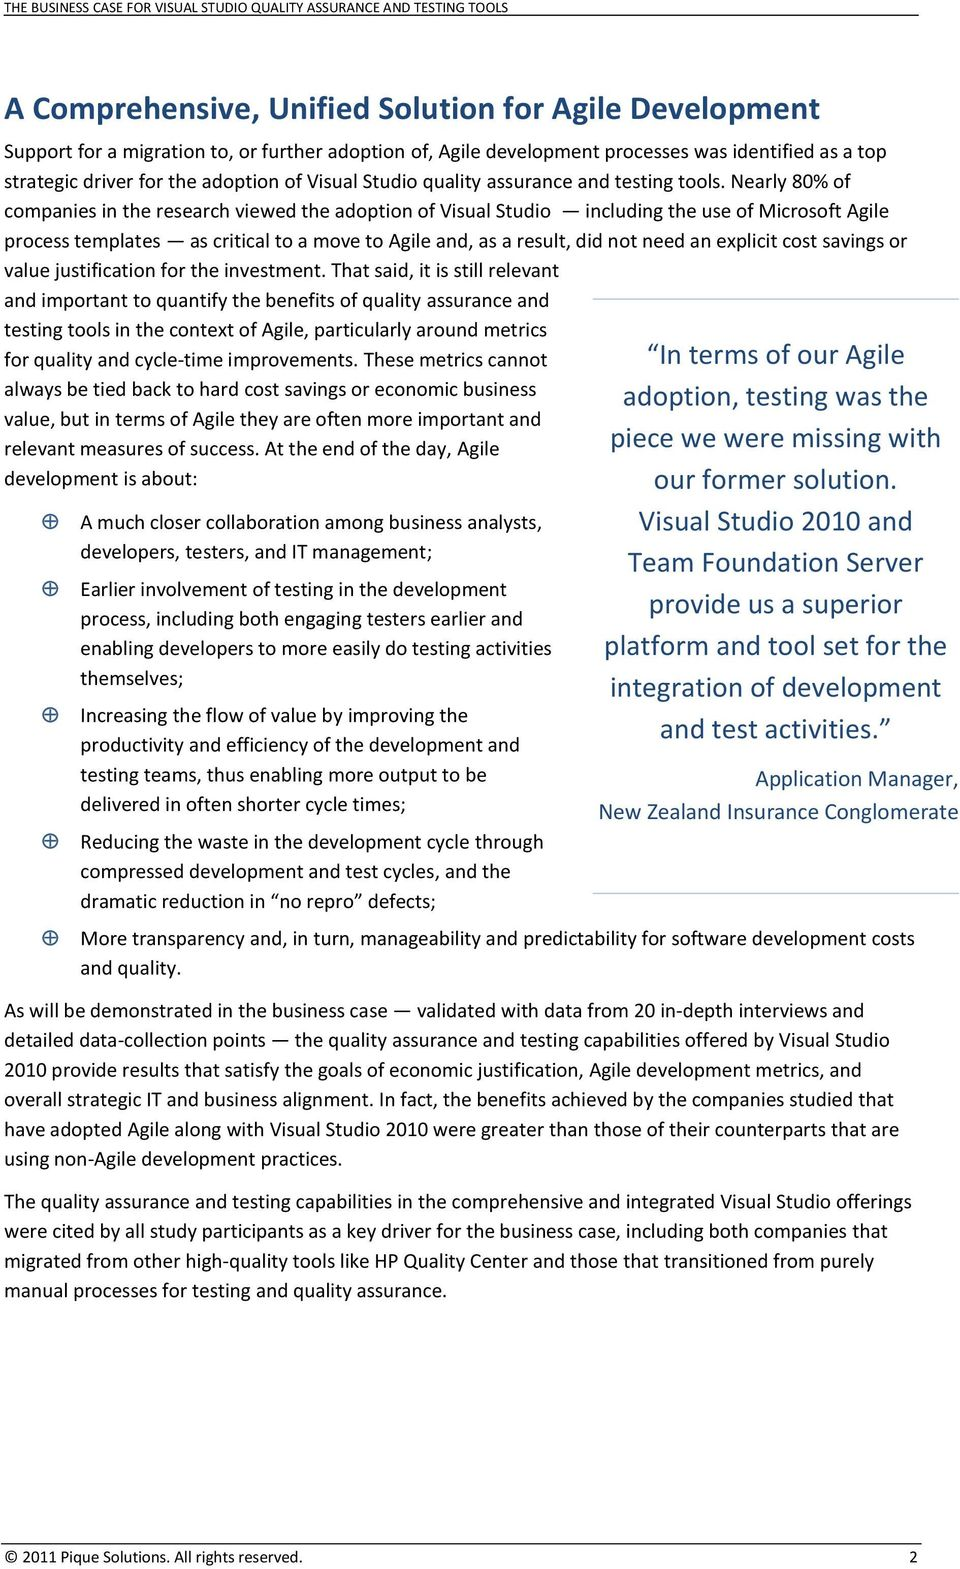 Nearly 80% of companies in the research viewed the adoption of Visual Studio including the use of Microsoft Agile process templates as critical to a move to Agile and, as a result, did not need an